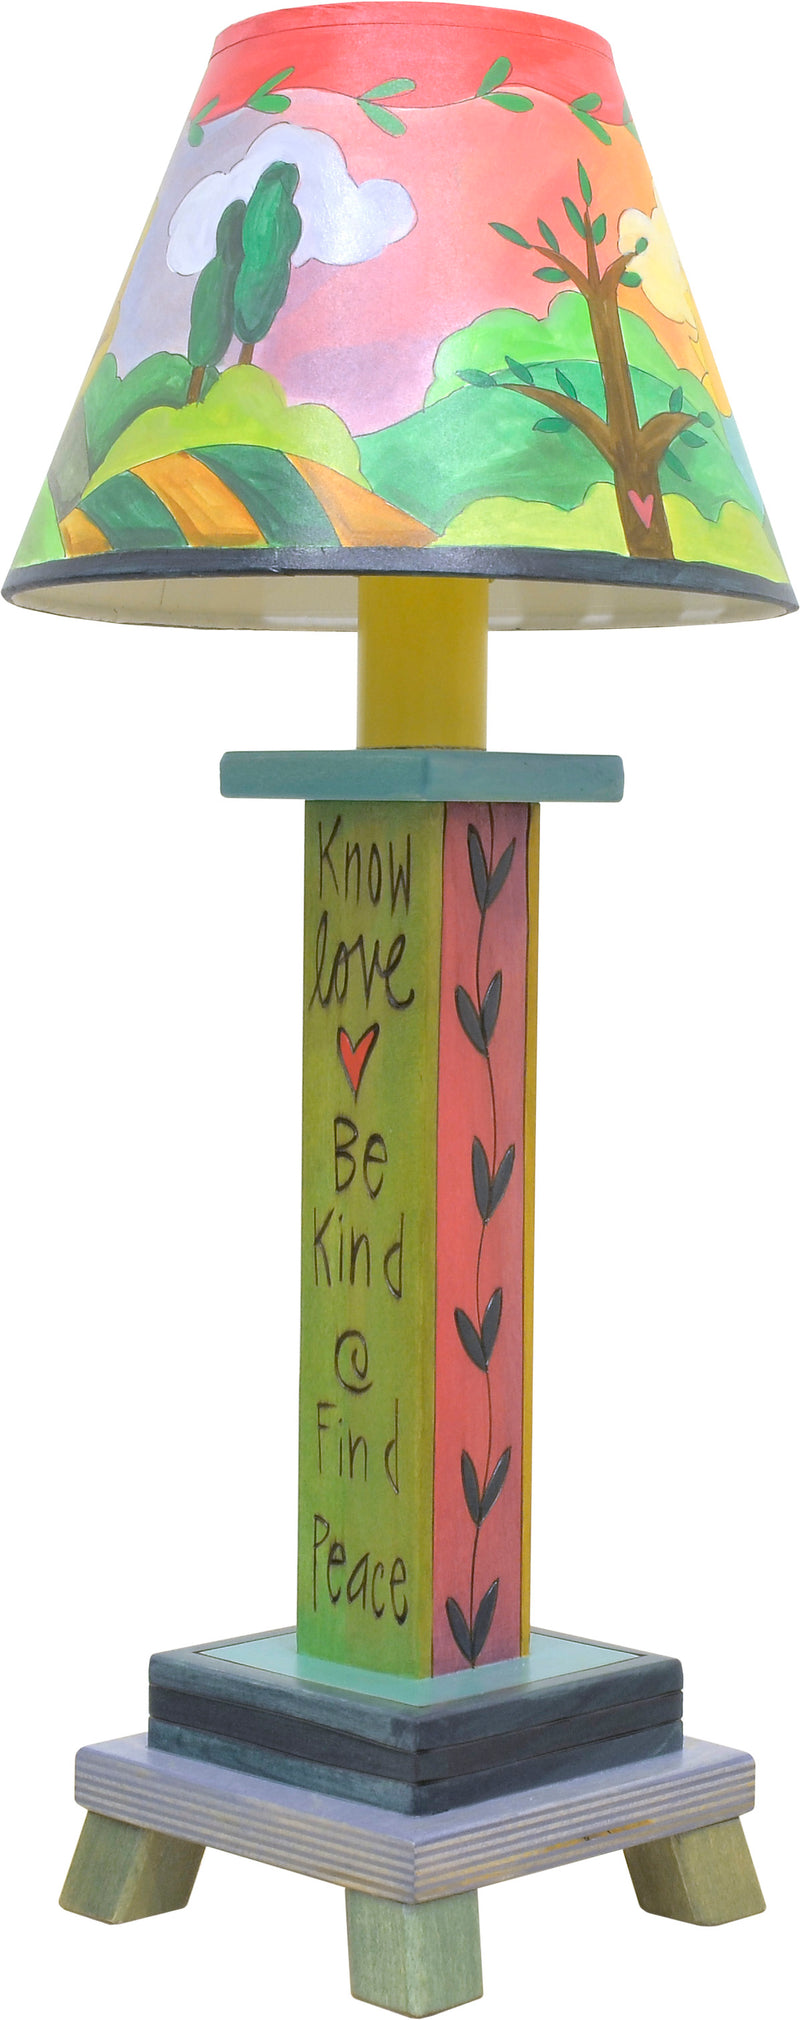 Milled Candlestick Lamp –  Beautiful landscape shade with tree of life and inspirational phrases on its base